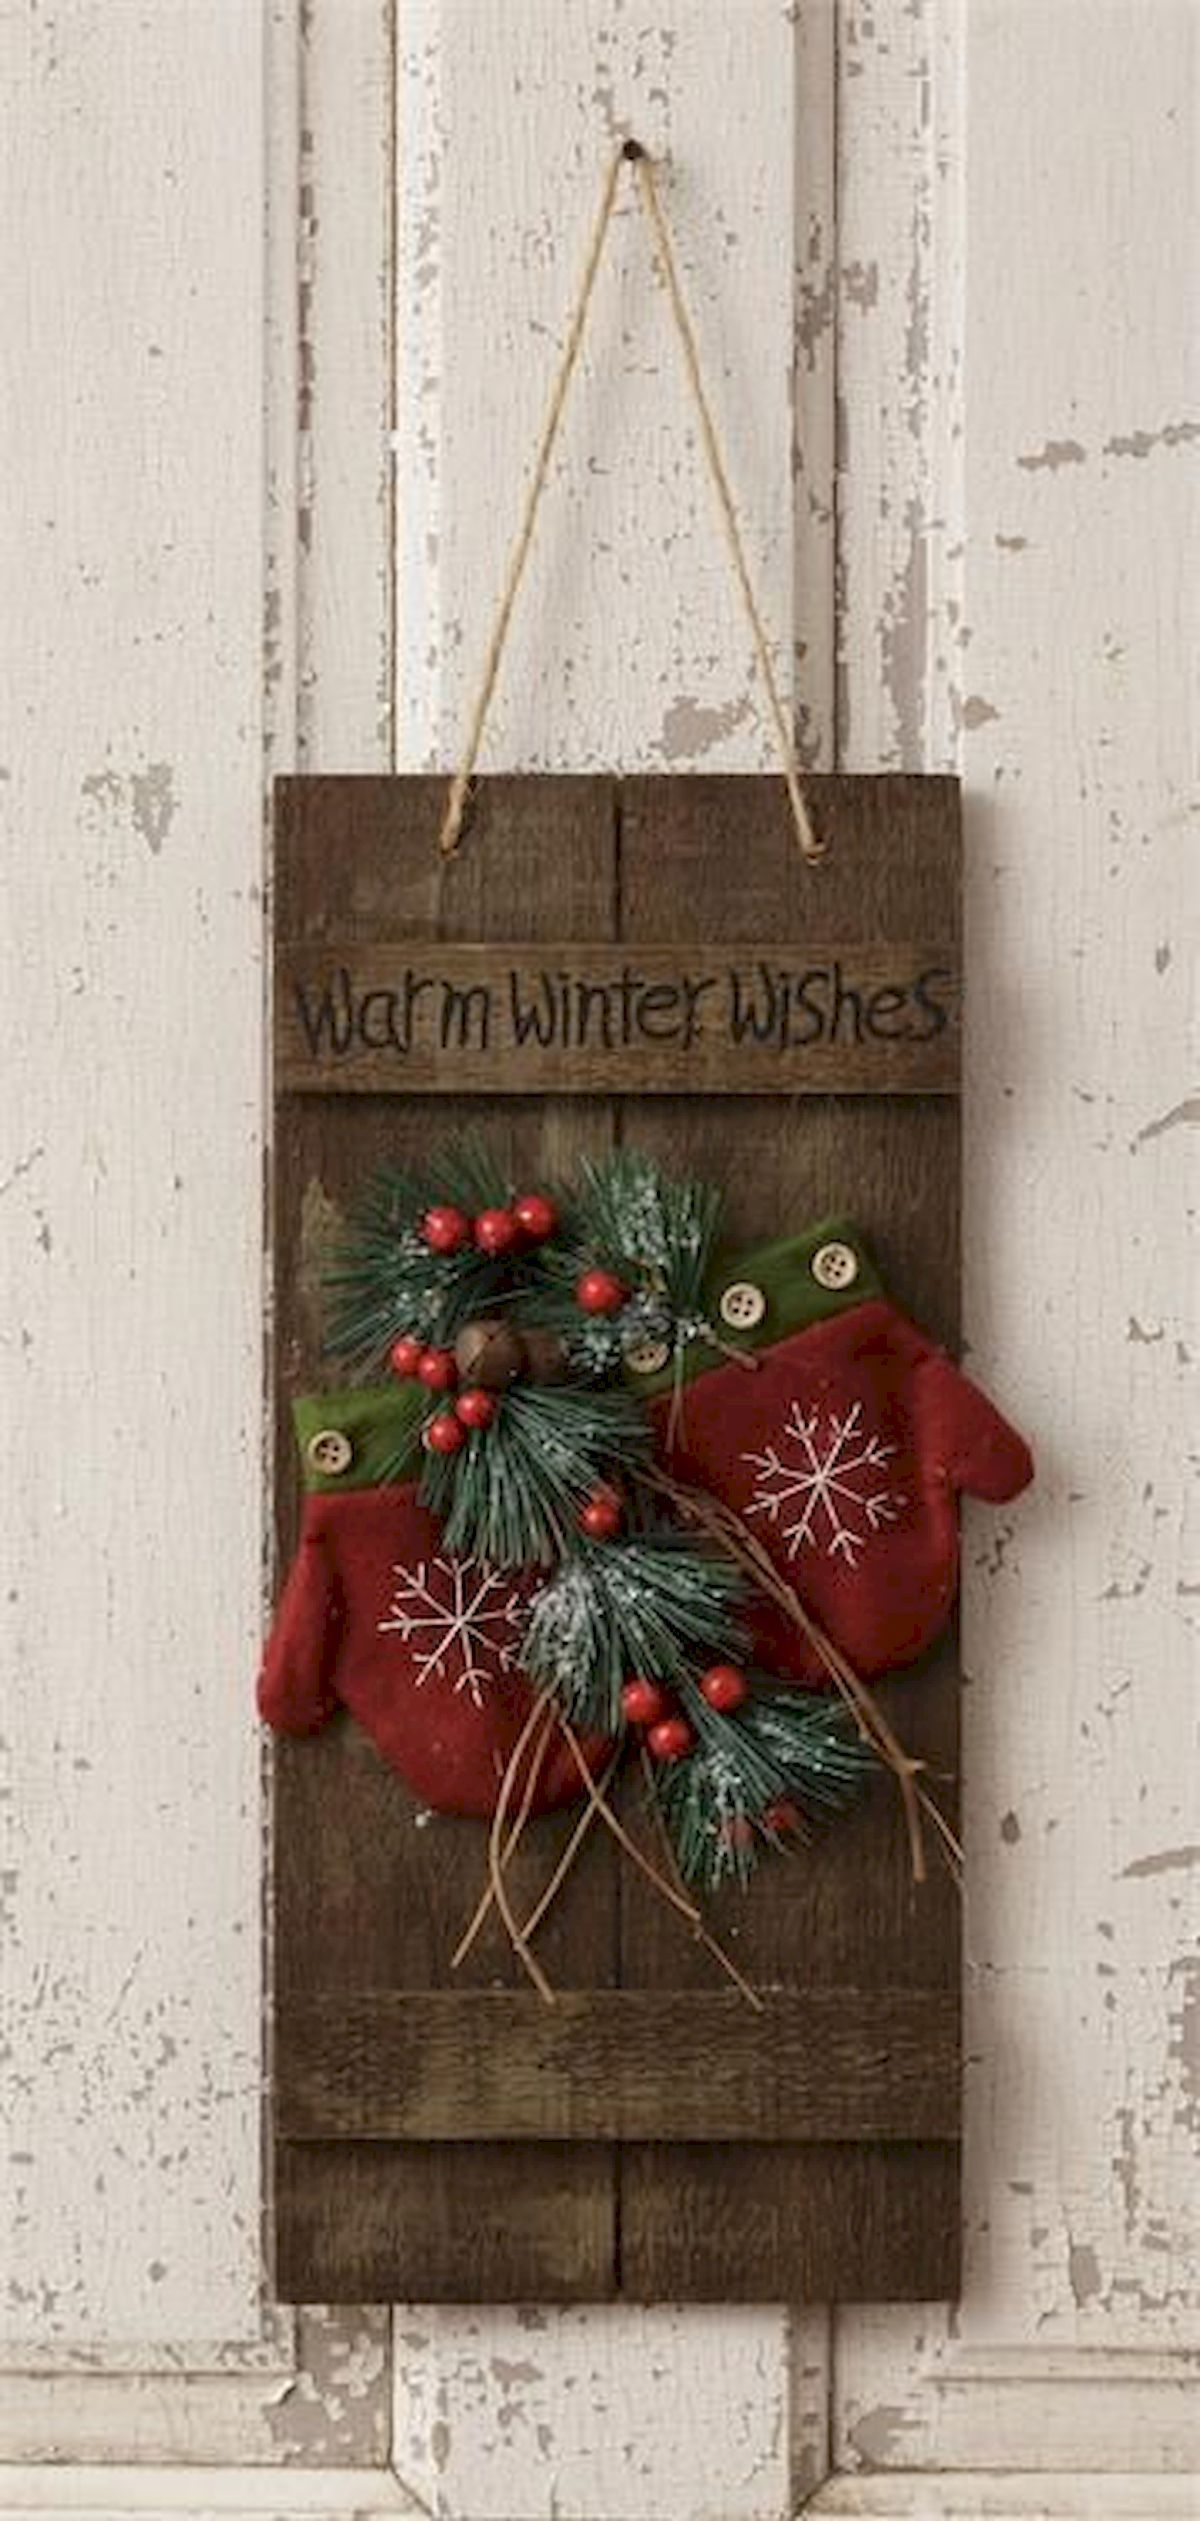 Cool 40 Stunning Rustic Christmas Decor Ideas Httpscoachdecorcom40